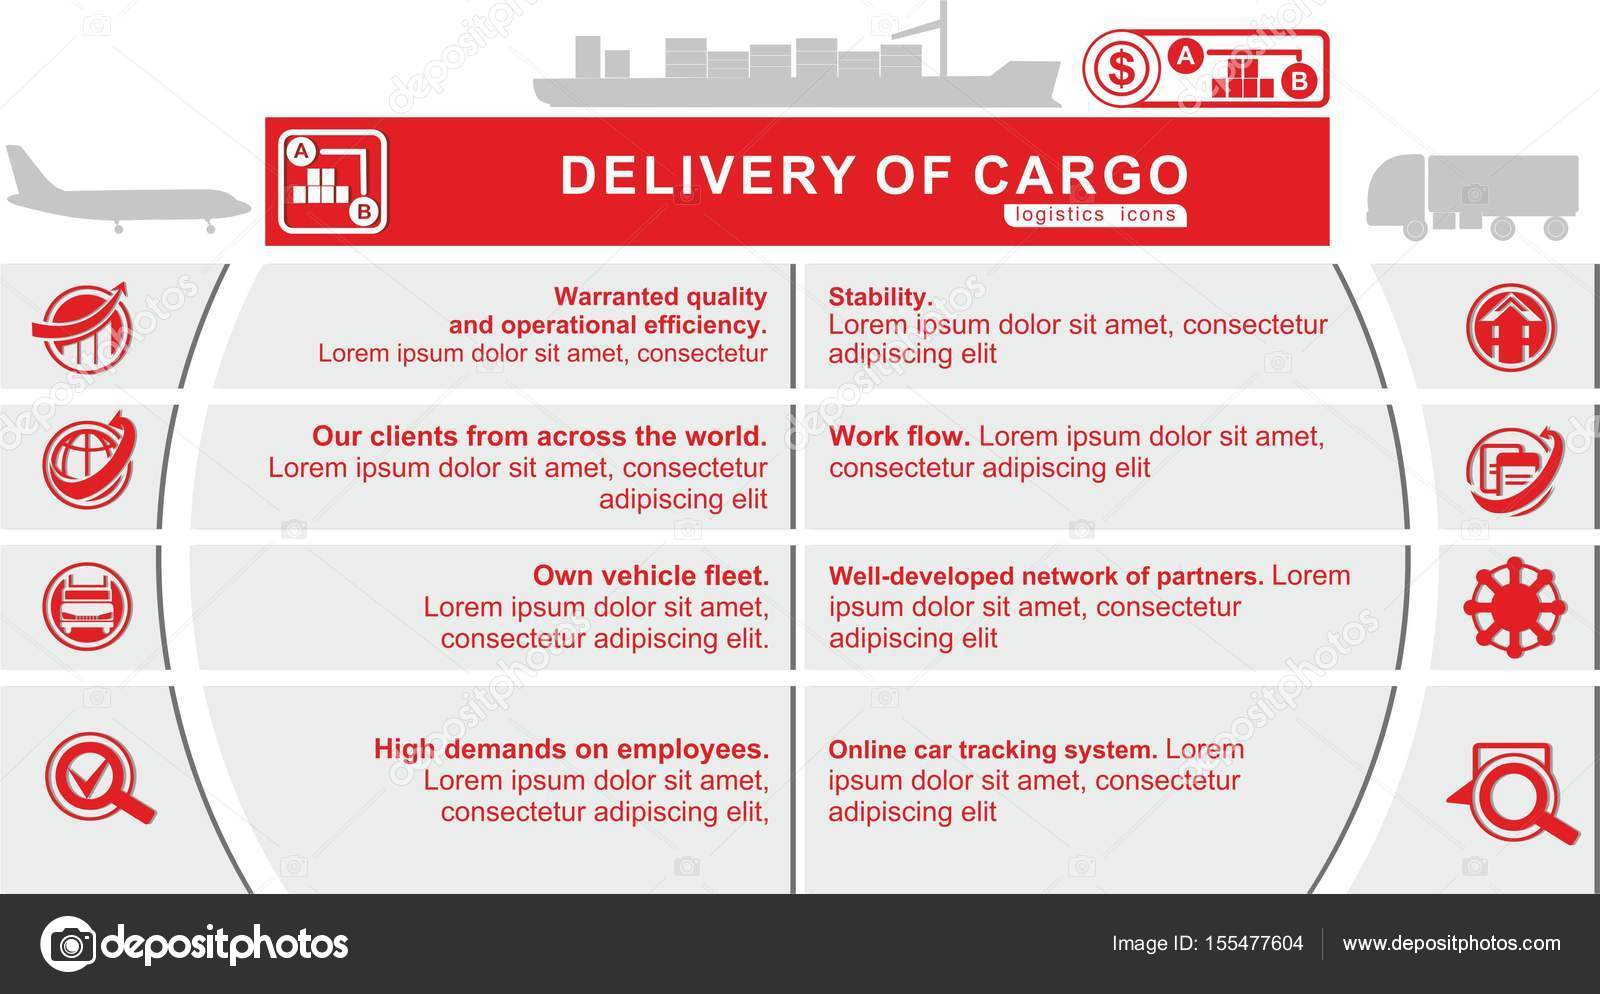 Red grey logistics icons  Delivery of cargo  Logistics template for